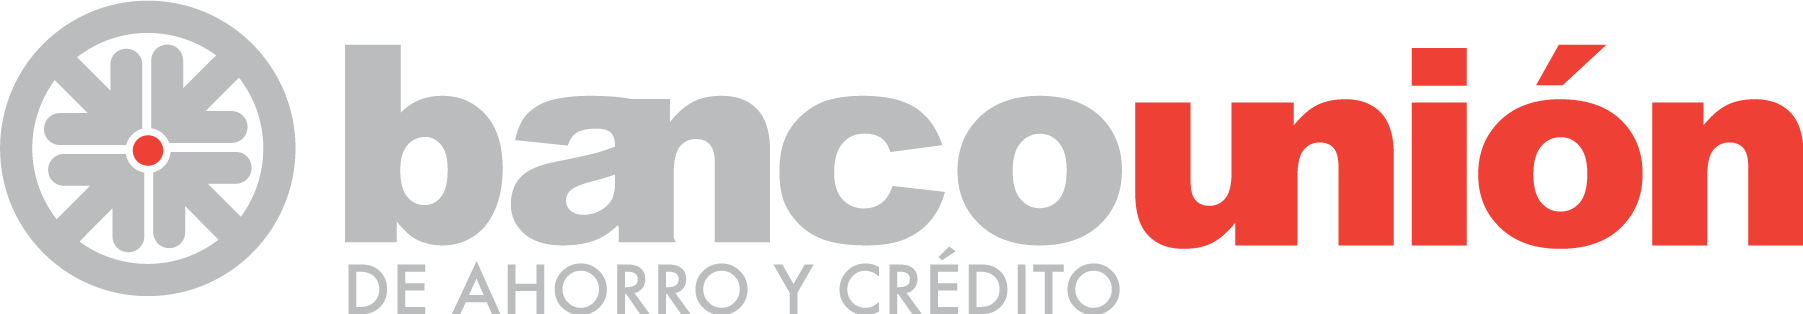 Socios - image banco-union-logo on http://gcs-international.com